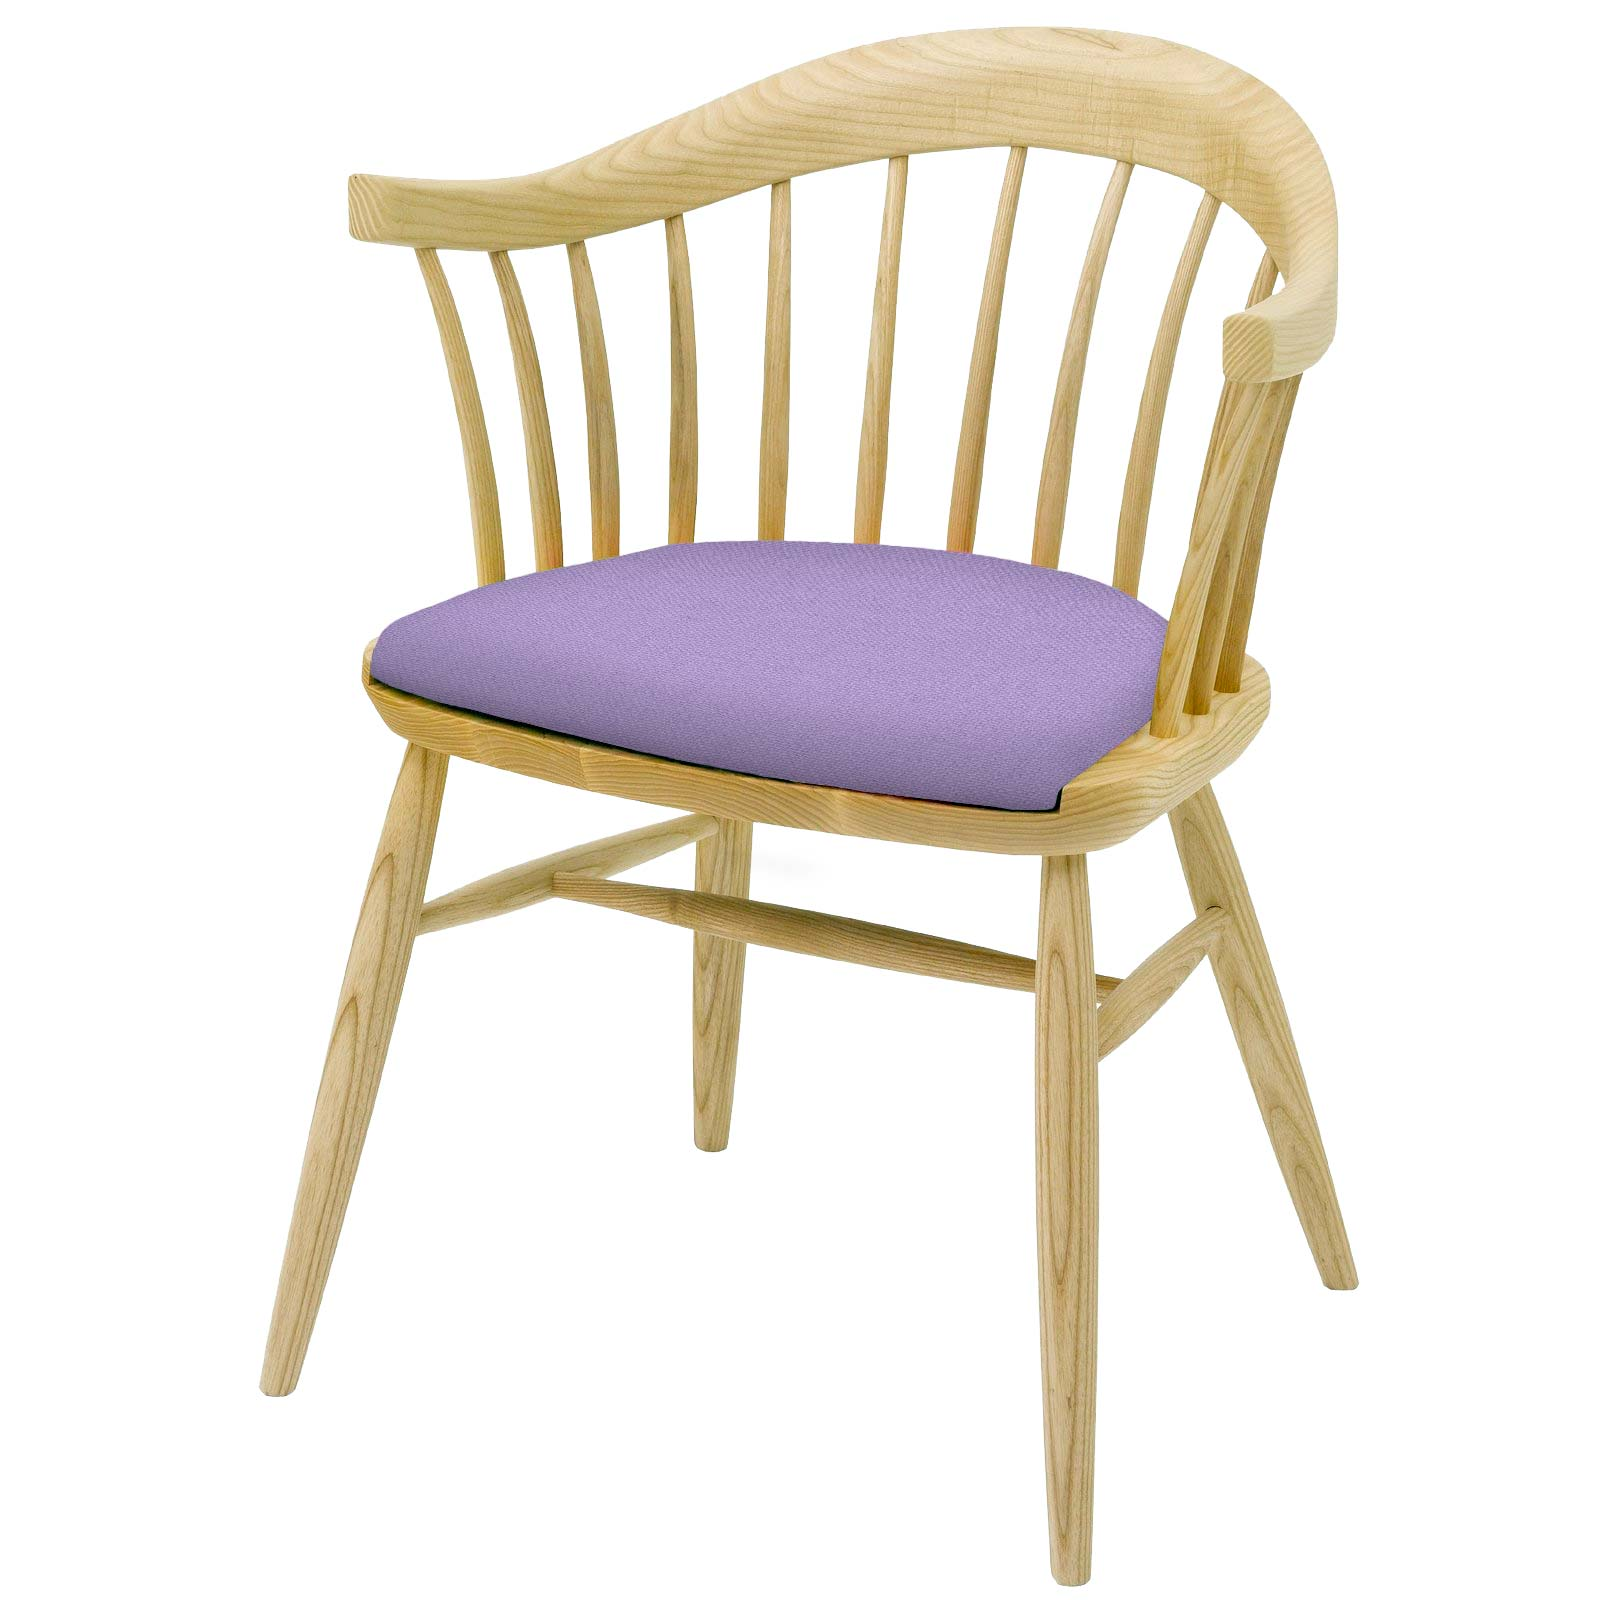 Hand crafted  Chair in solid English Ash Upholstered in your chosen colourway